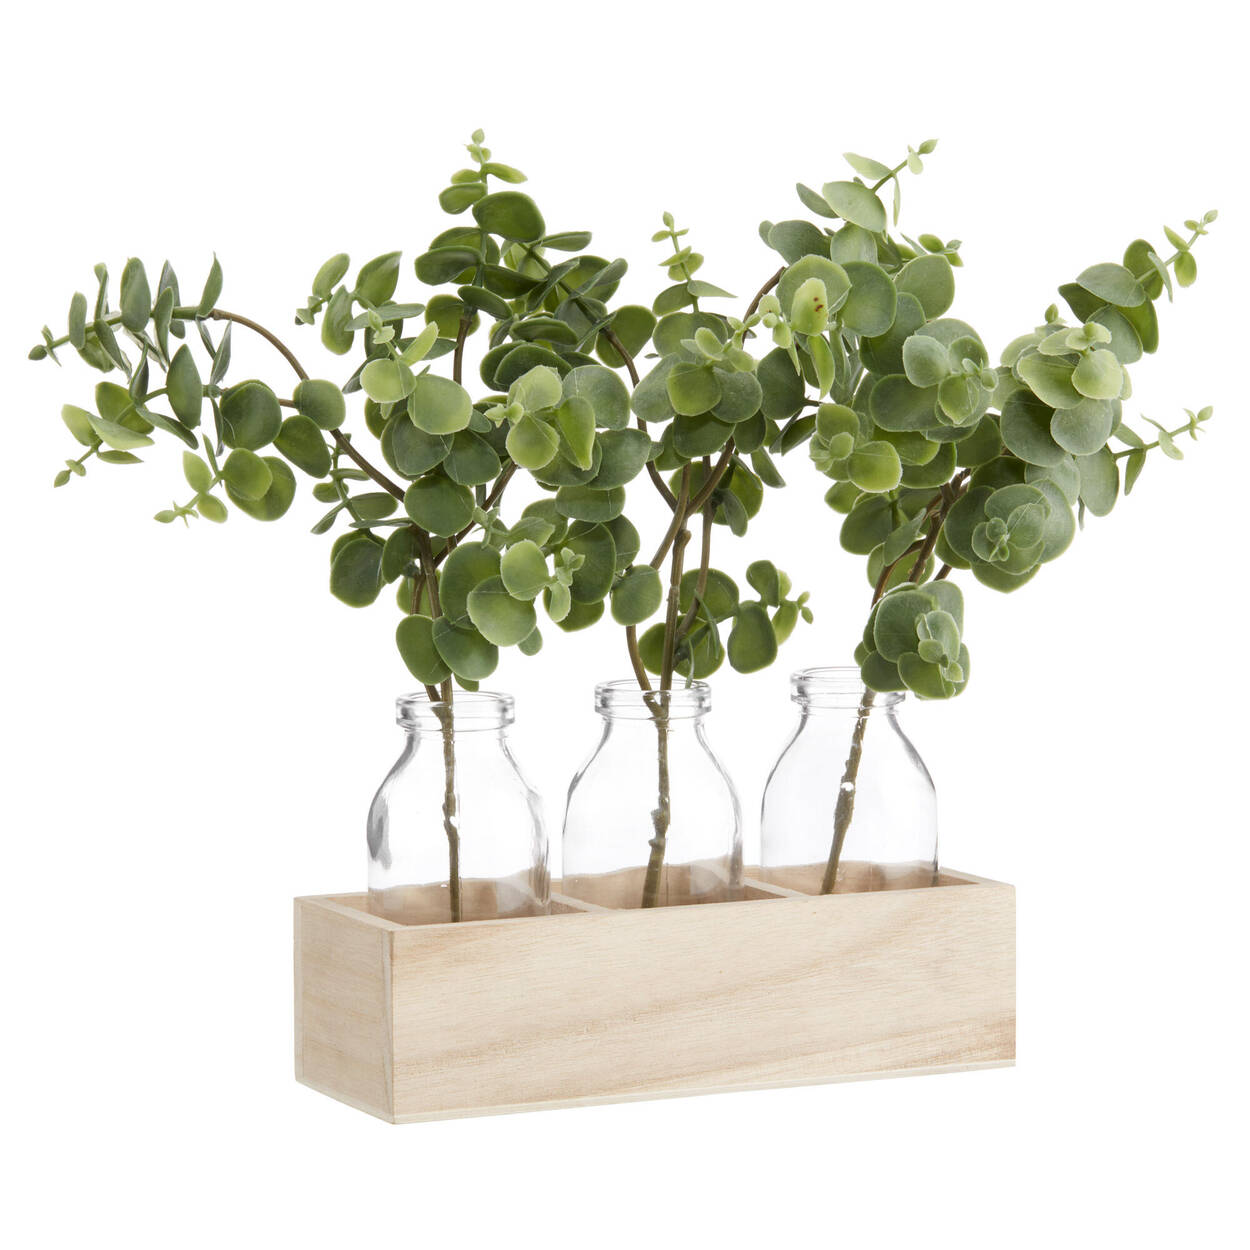 3 Eucalyptus Plants in Natural Wooden Box